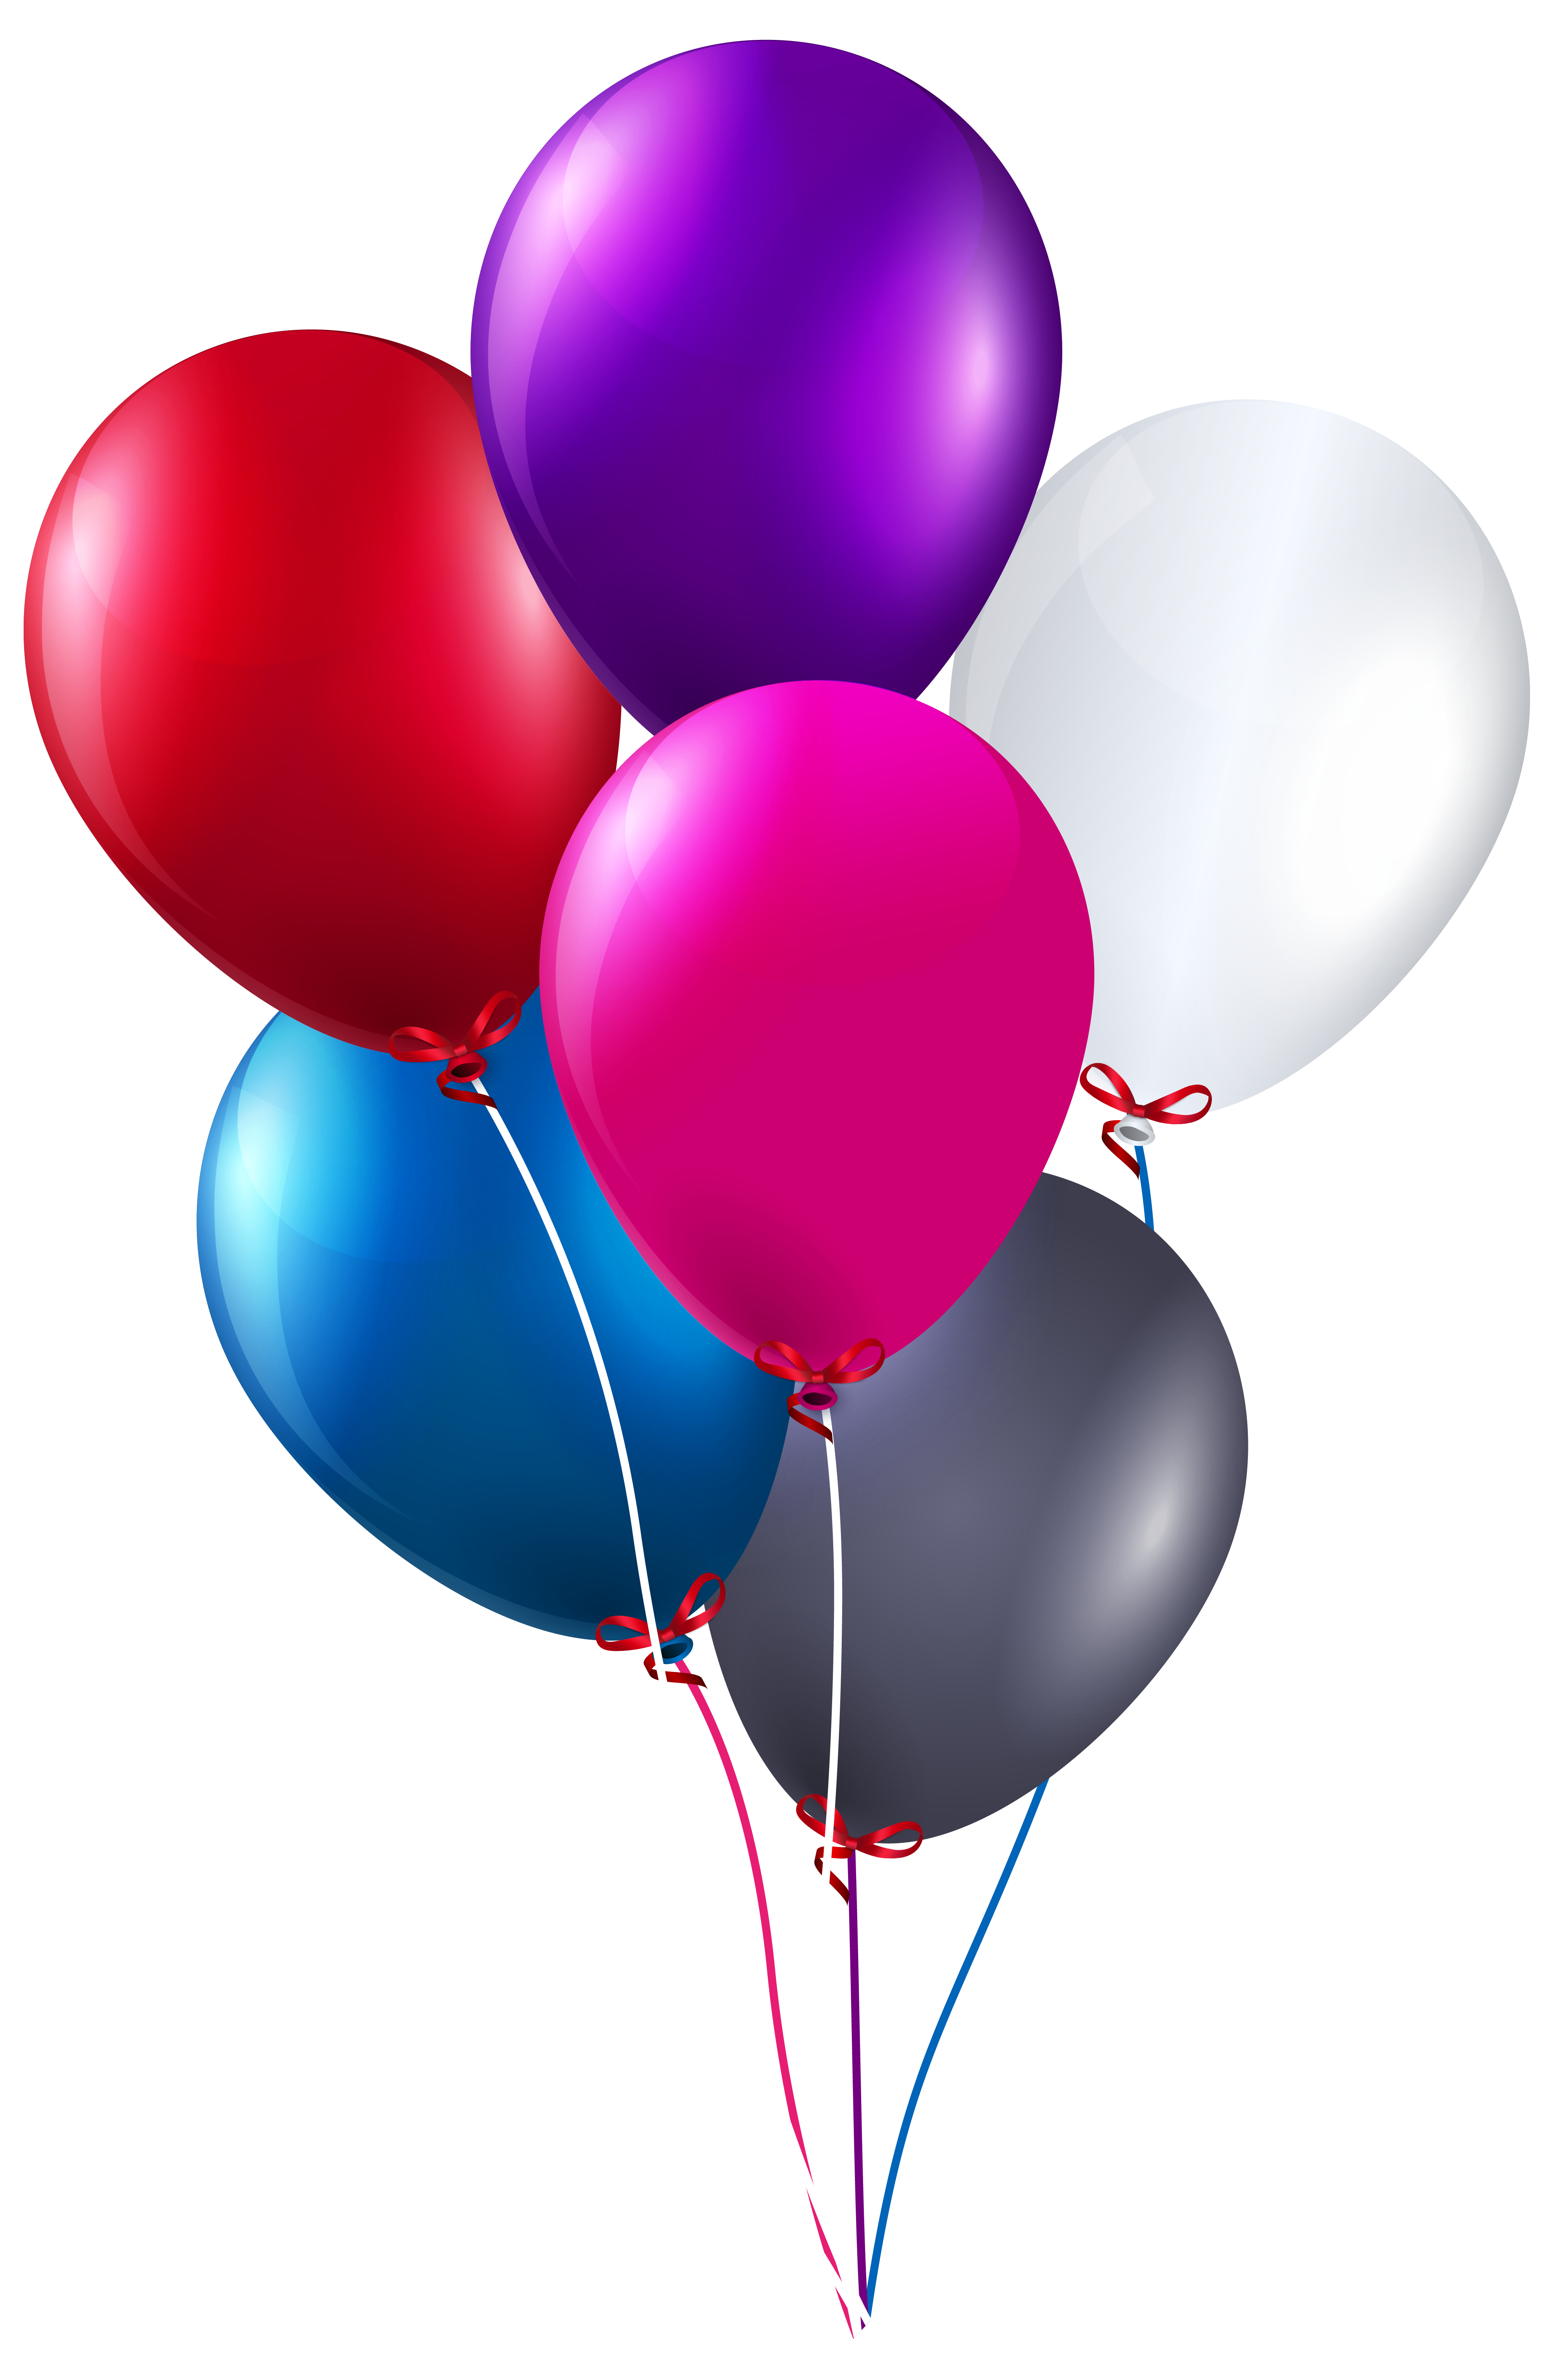 Balloon Clipart, Free Balloons Png Images Download.